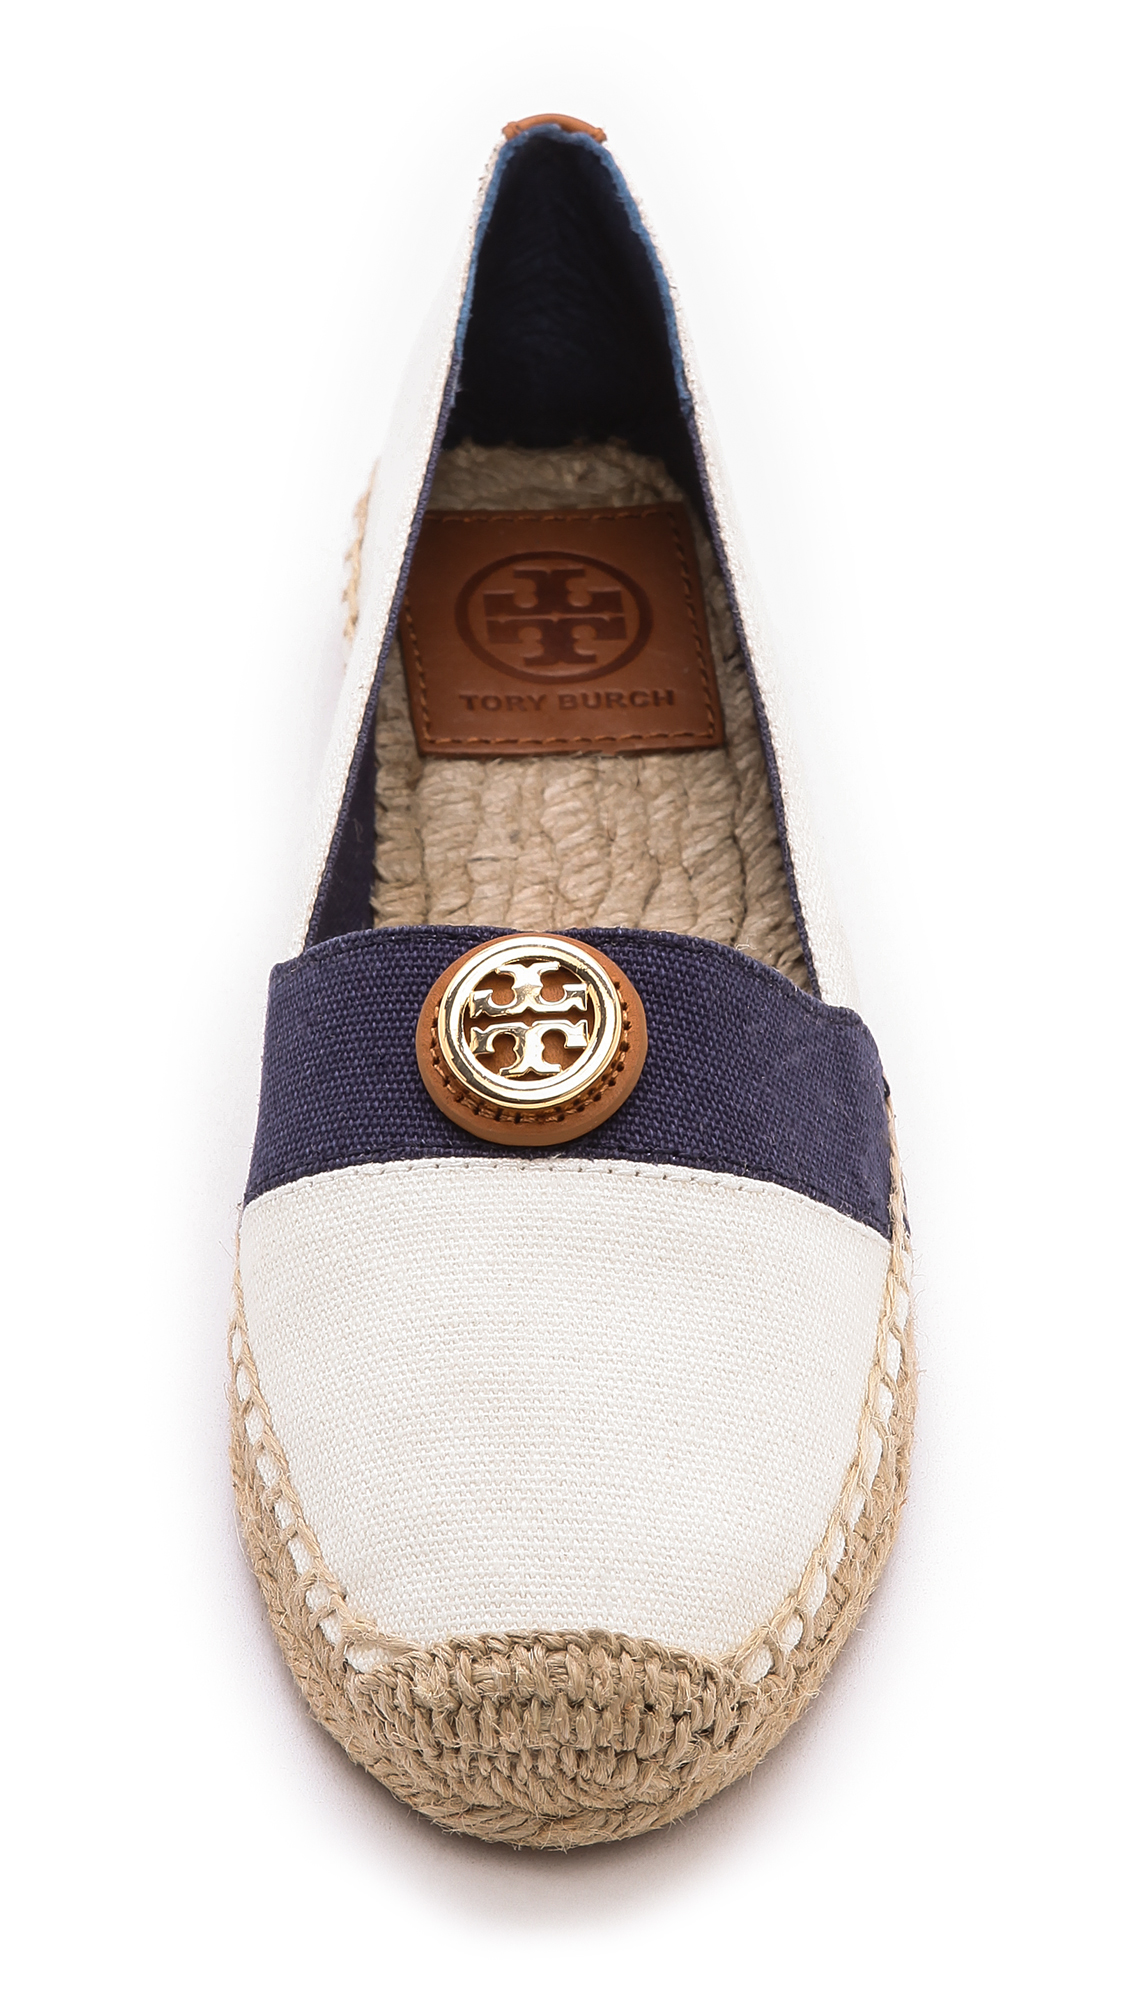 eecdcf551c2 ... discount tory burch beacher flat espadrilles shopbop save up to 25 use  code stockup18 522b5 fe676